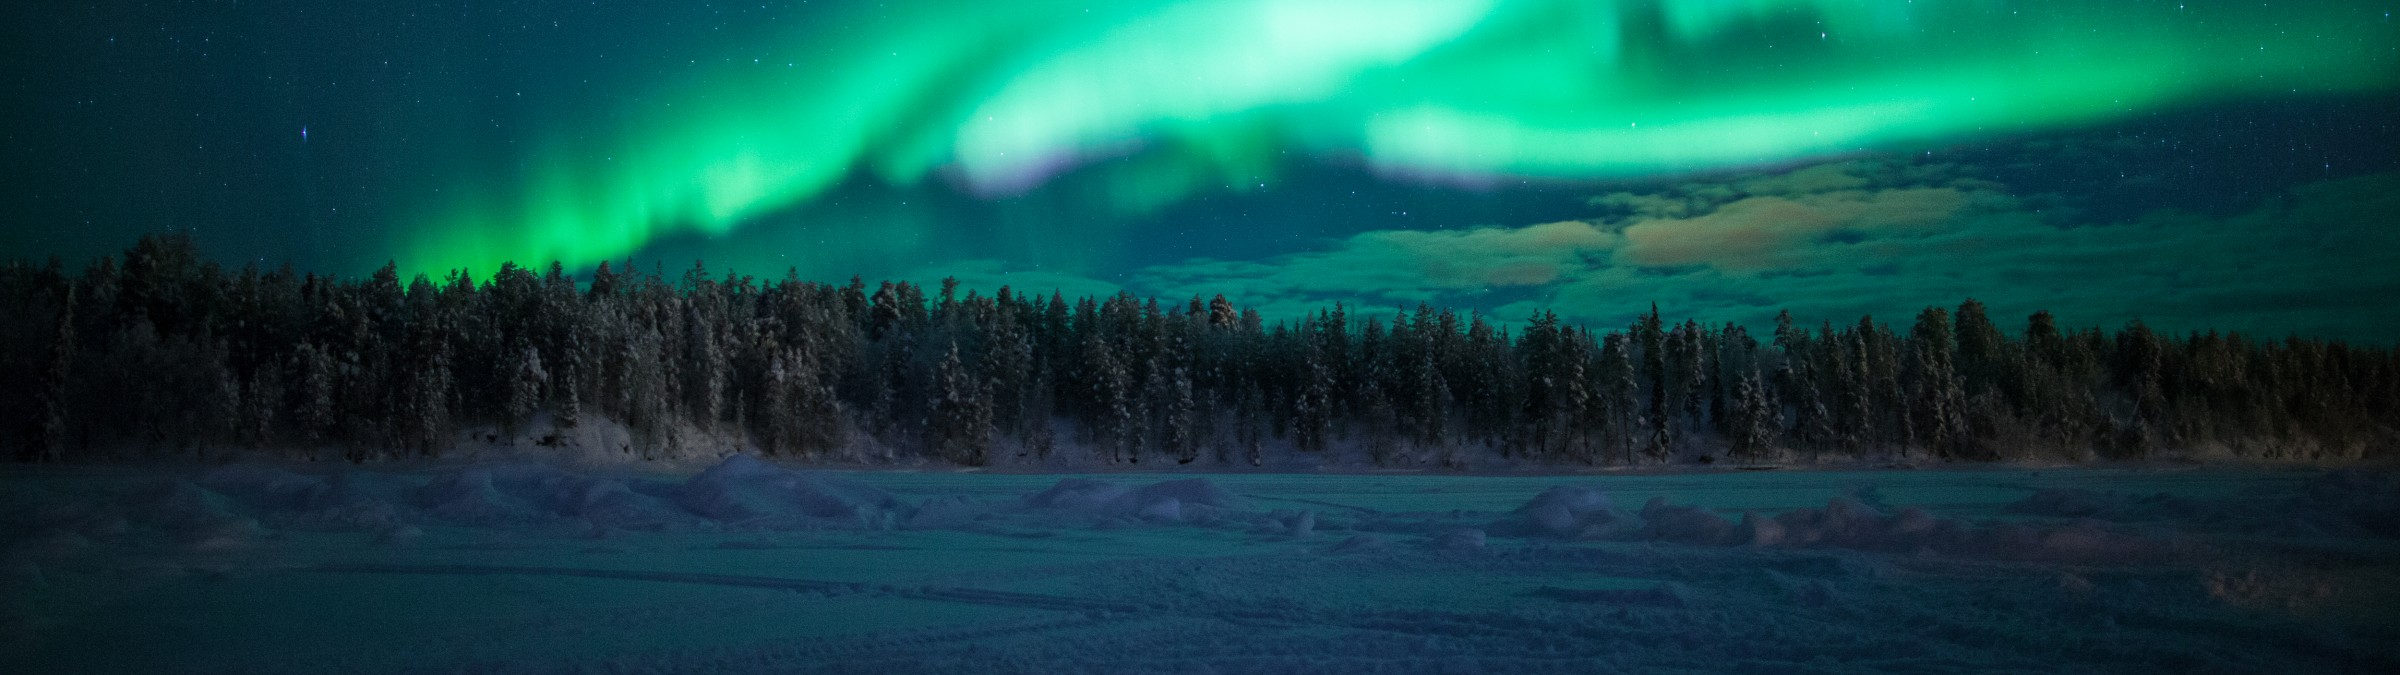 Northern Lights credit-Antti Pietikainen 109